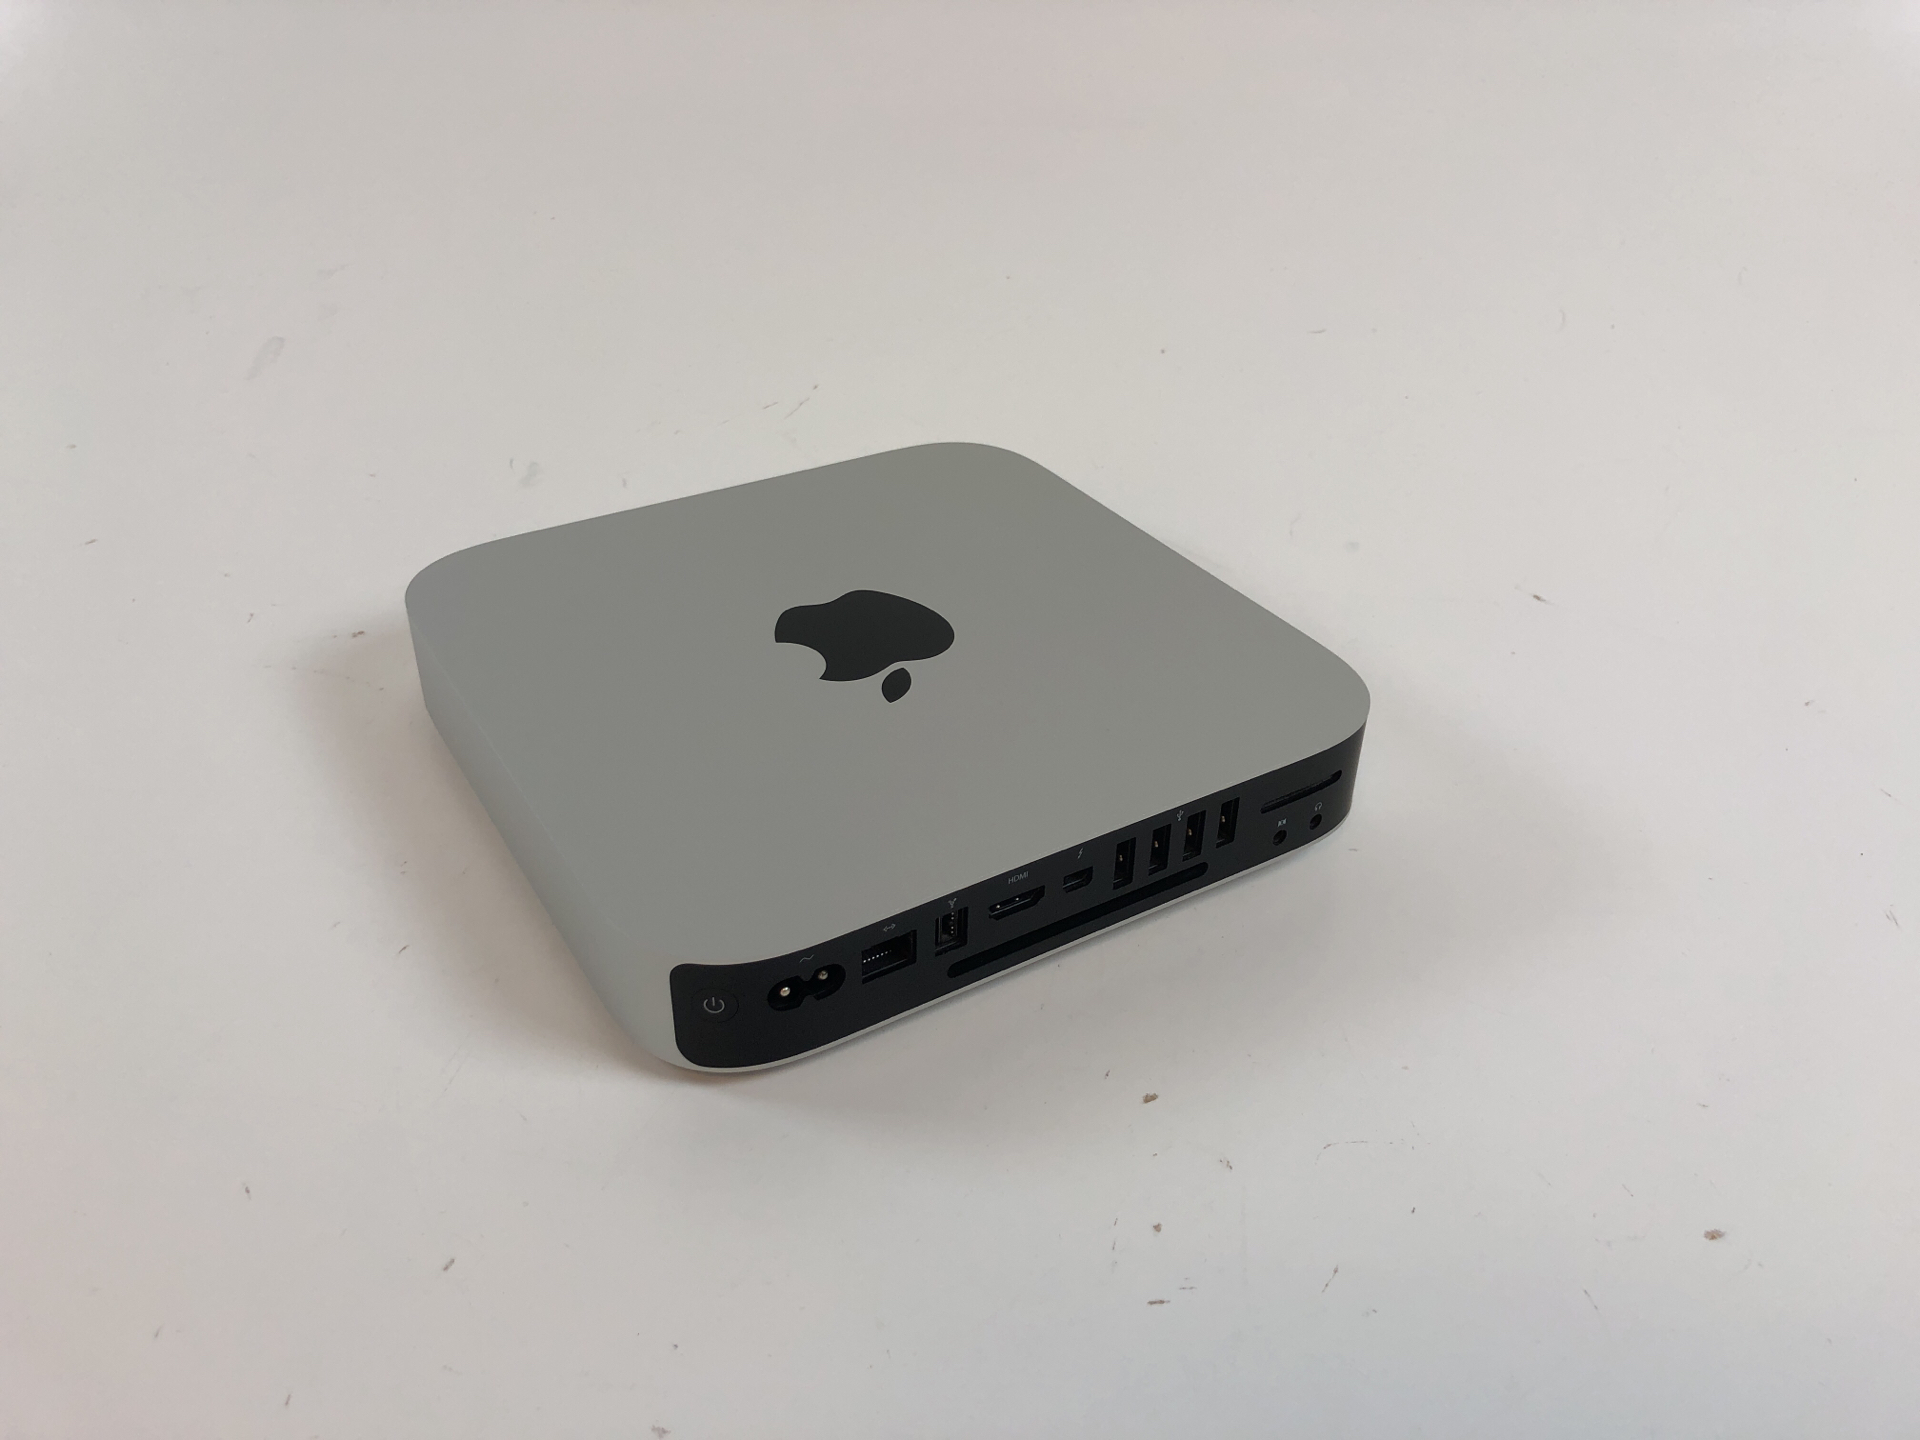 Mac Mini Late 2012 (Intel Core i5 2.5 GHz 8 GB RAM 256 GB SSD), Intel Core i5 2.5 GHz, 4 GB RAM, 240GB SSD, imagen 2